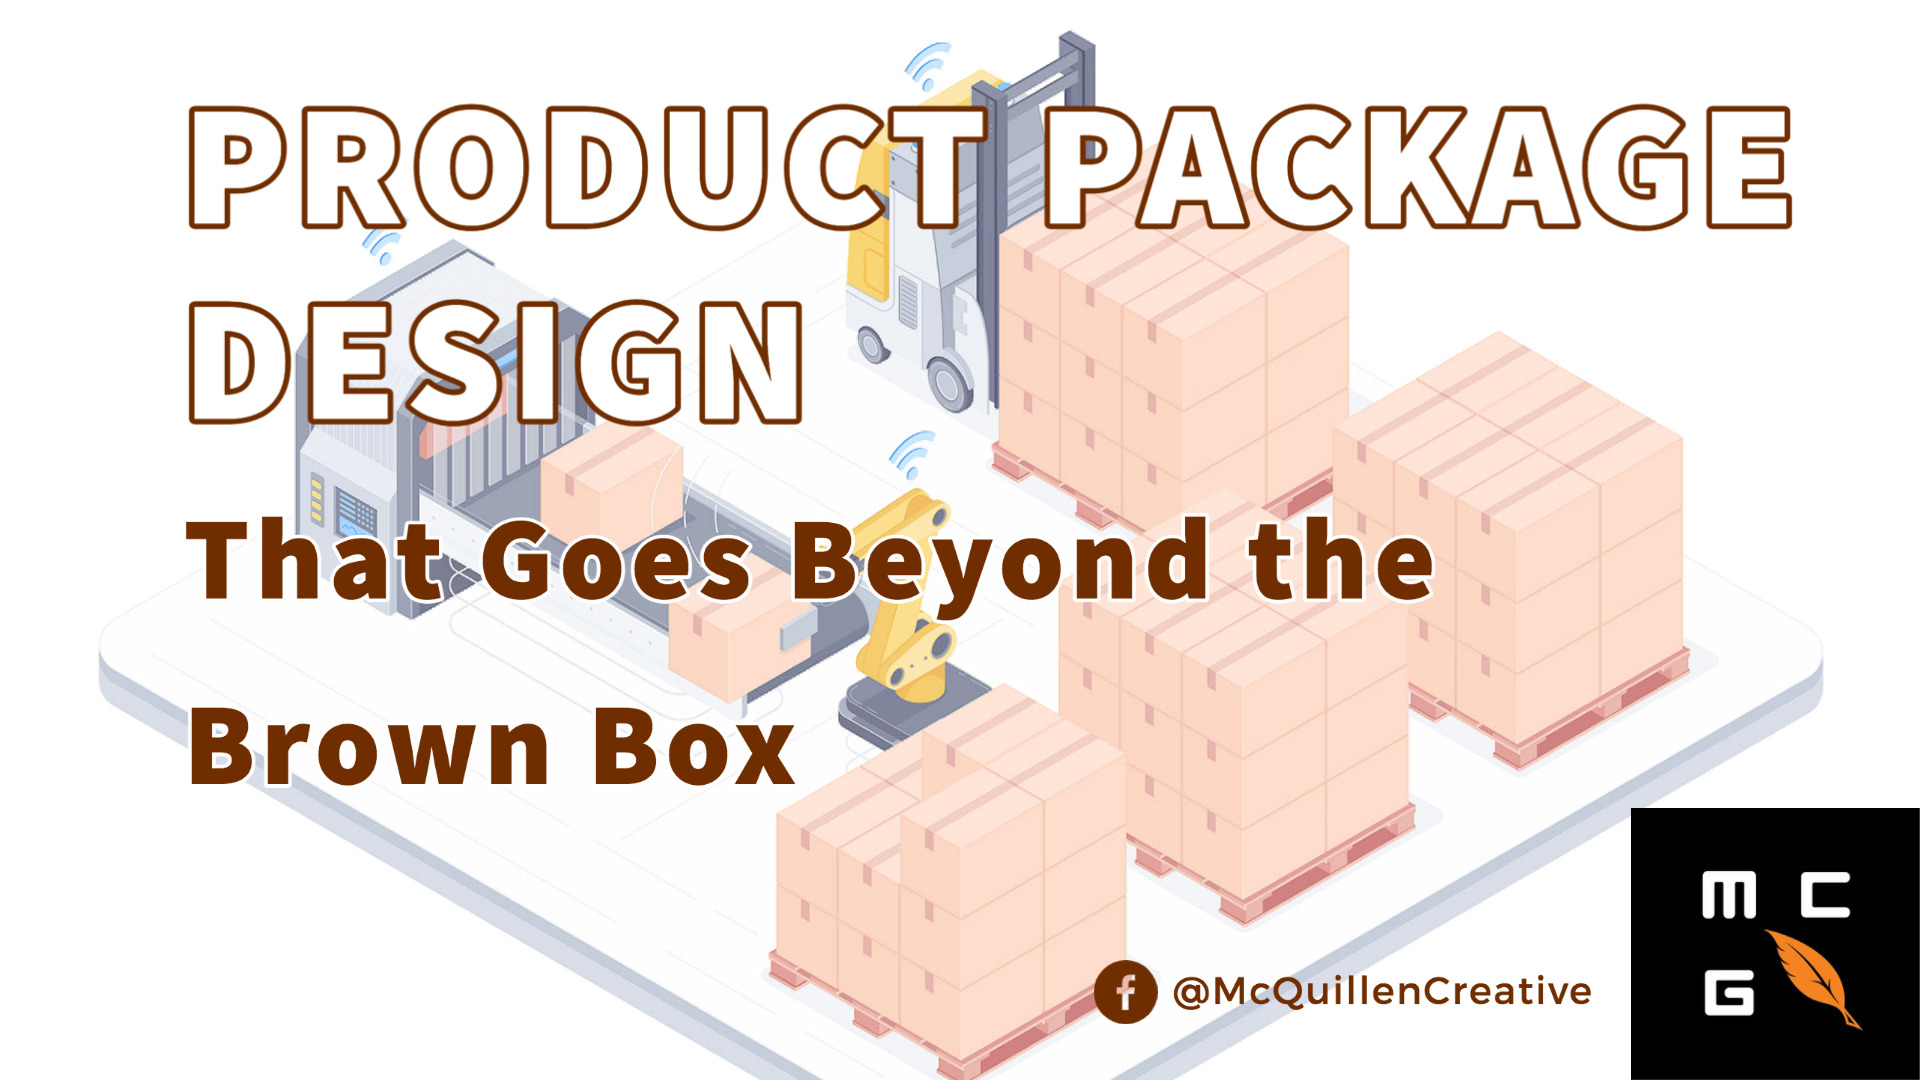 Product Packaging with MCG